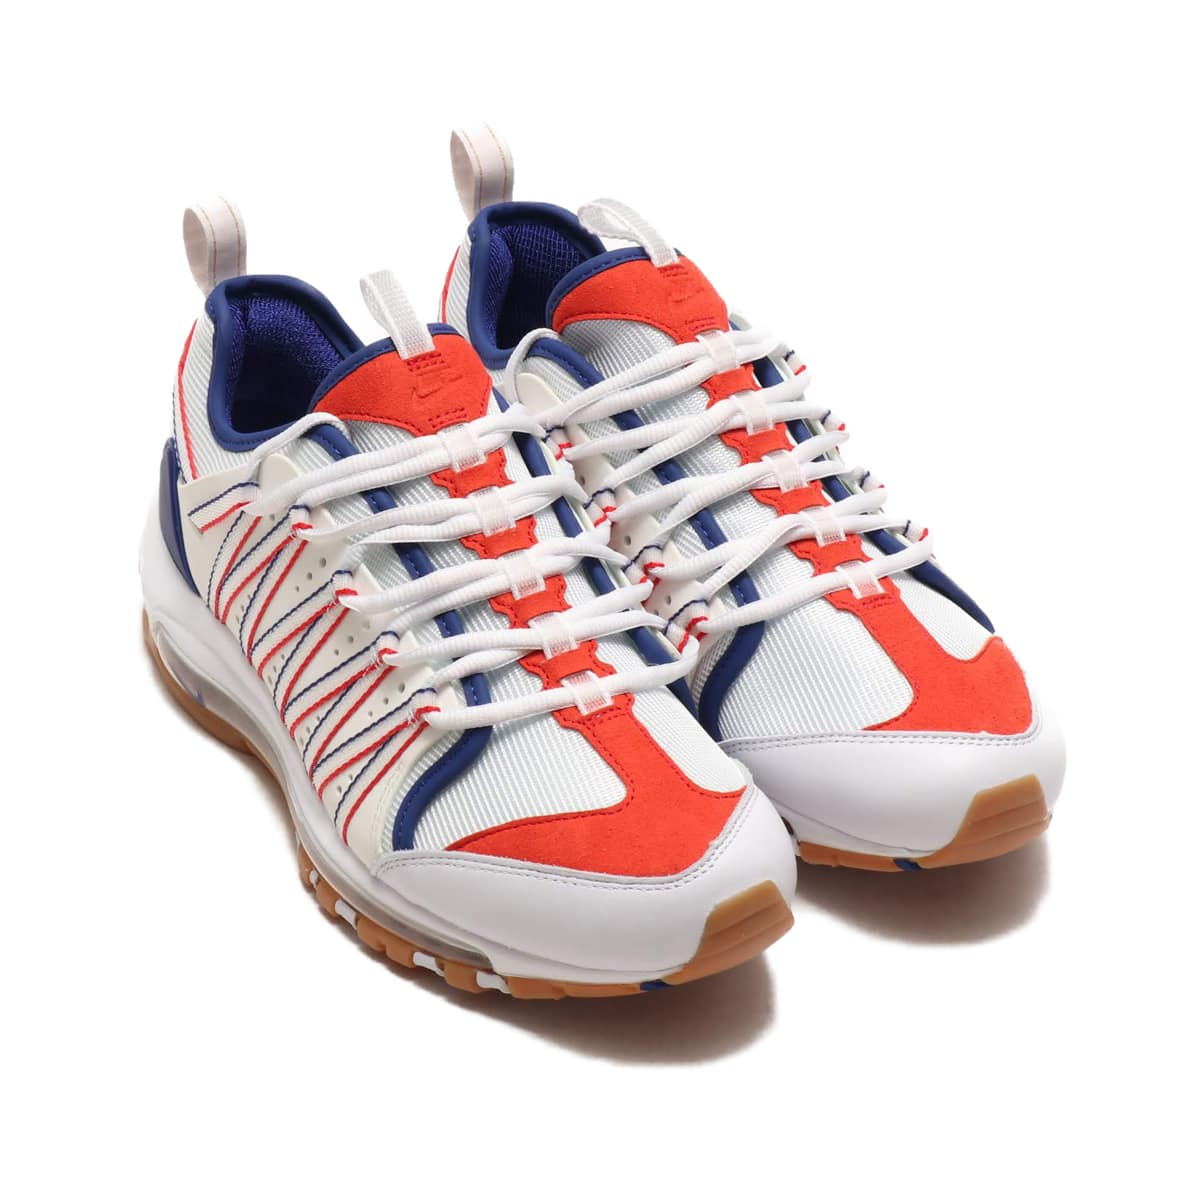 NIKE AIR MAX 97 / HAVEN / CLOT WHITE/SAIL-DEEP ROYAL BLUE 19SU-S_photo_large